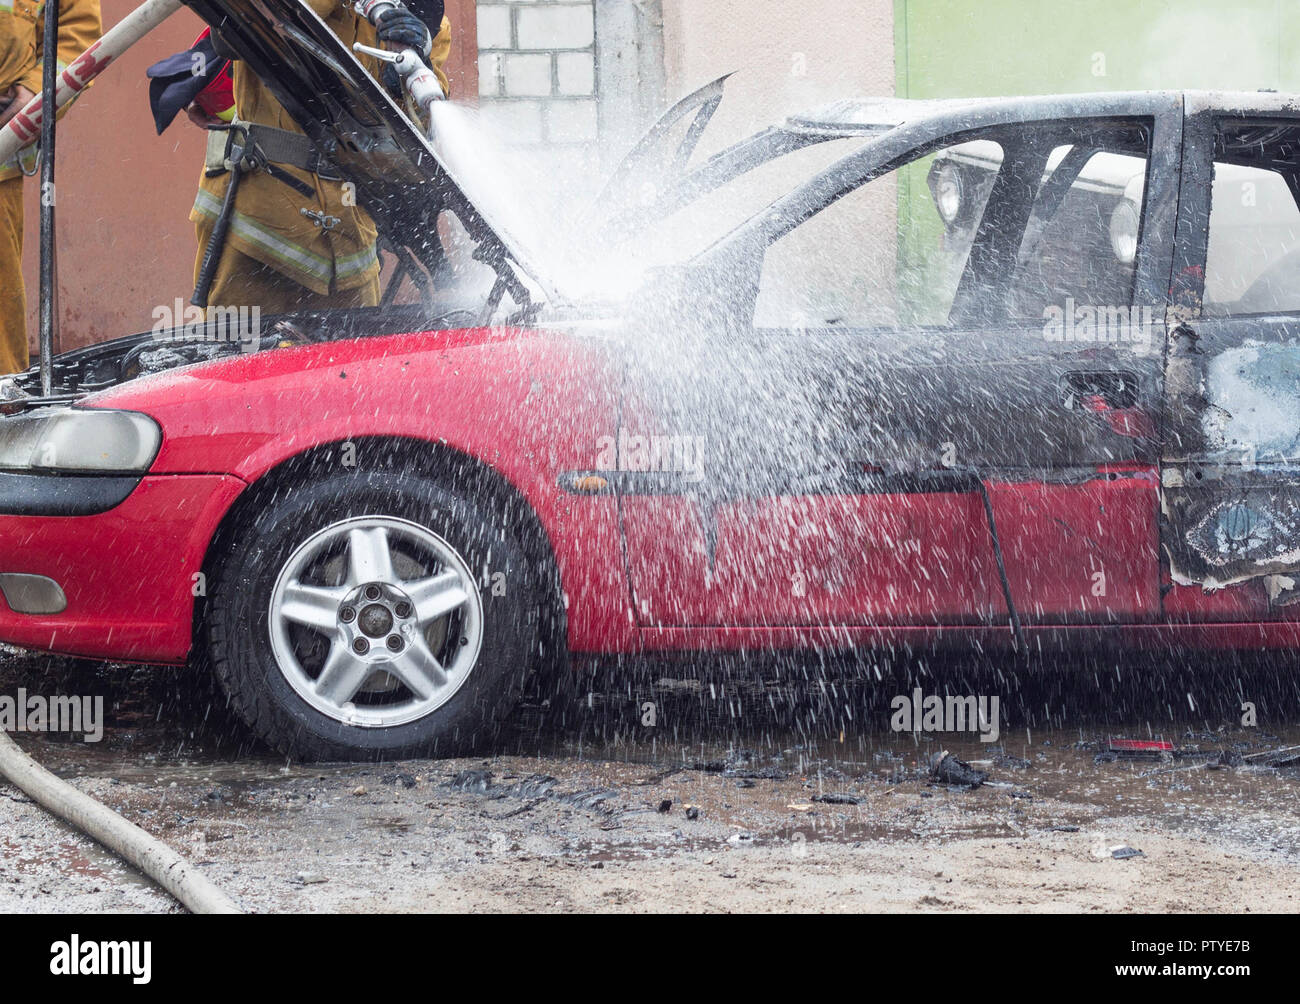 Firefighters extinguish a burning car with water, fire, extinguish - Stock Image